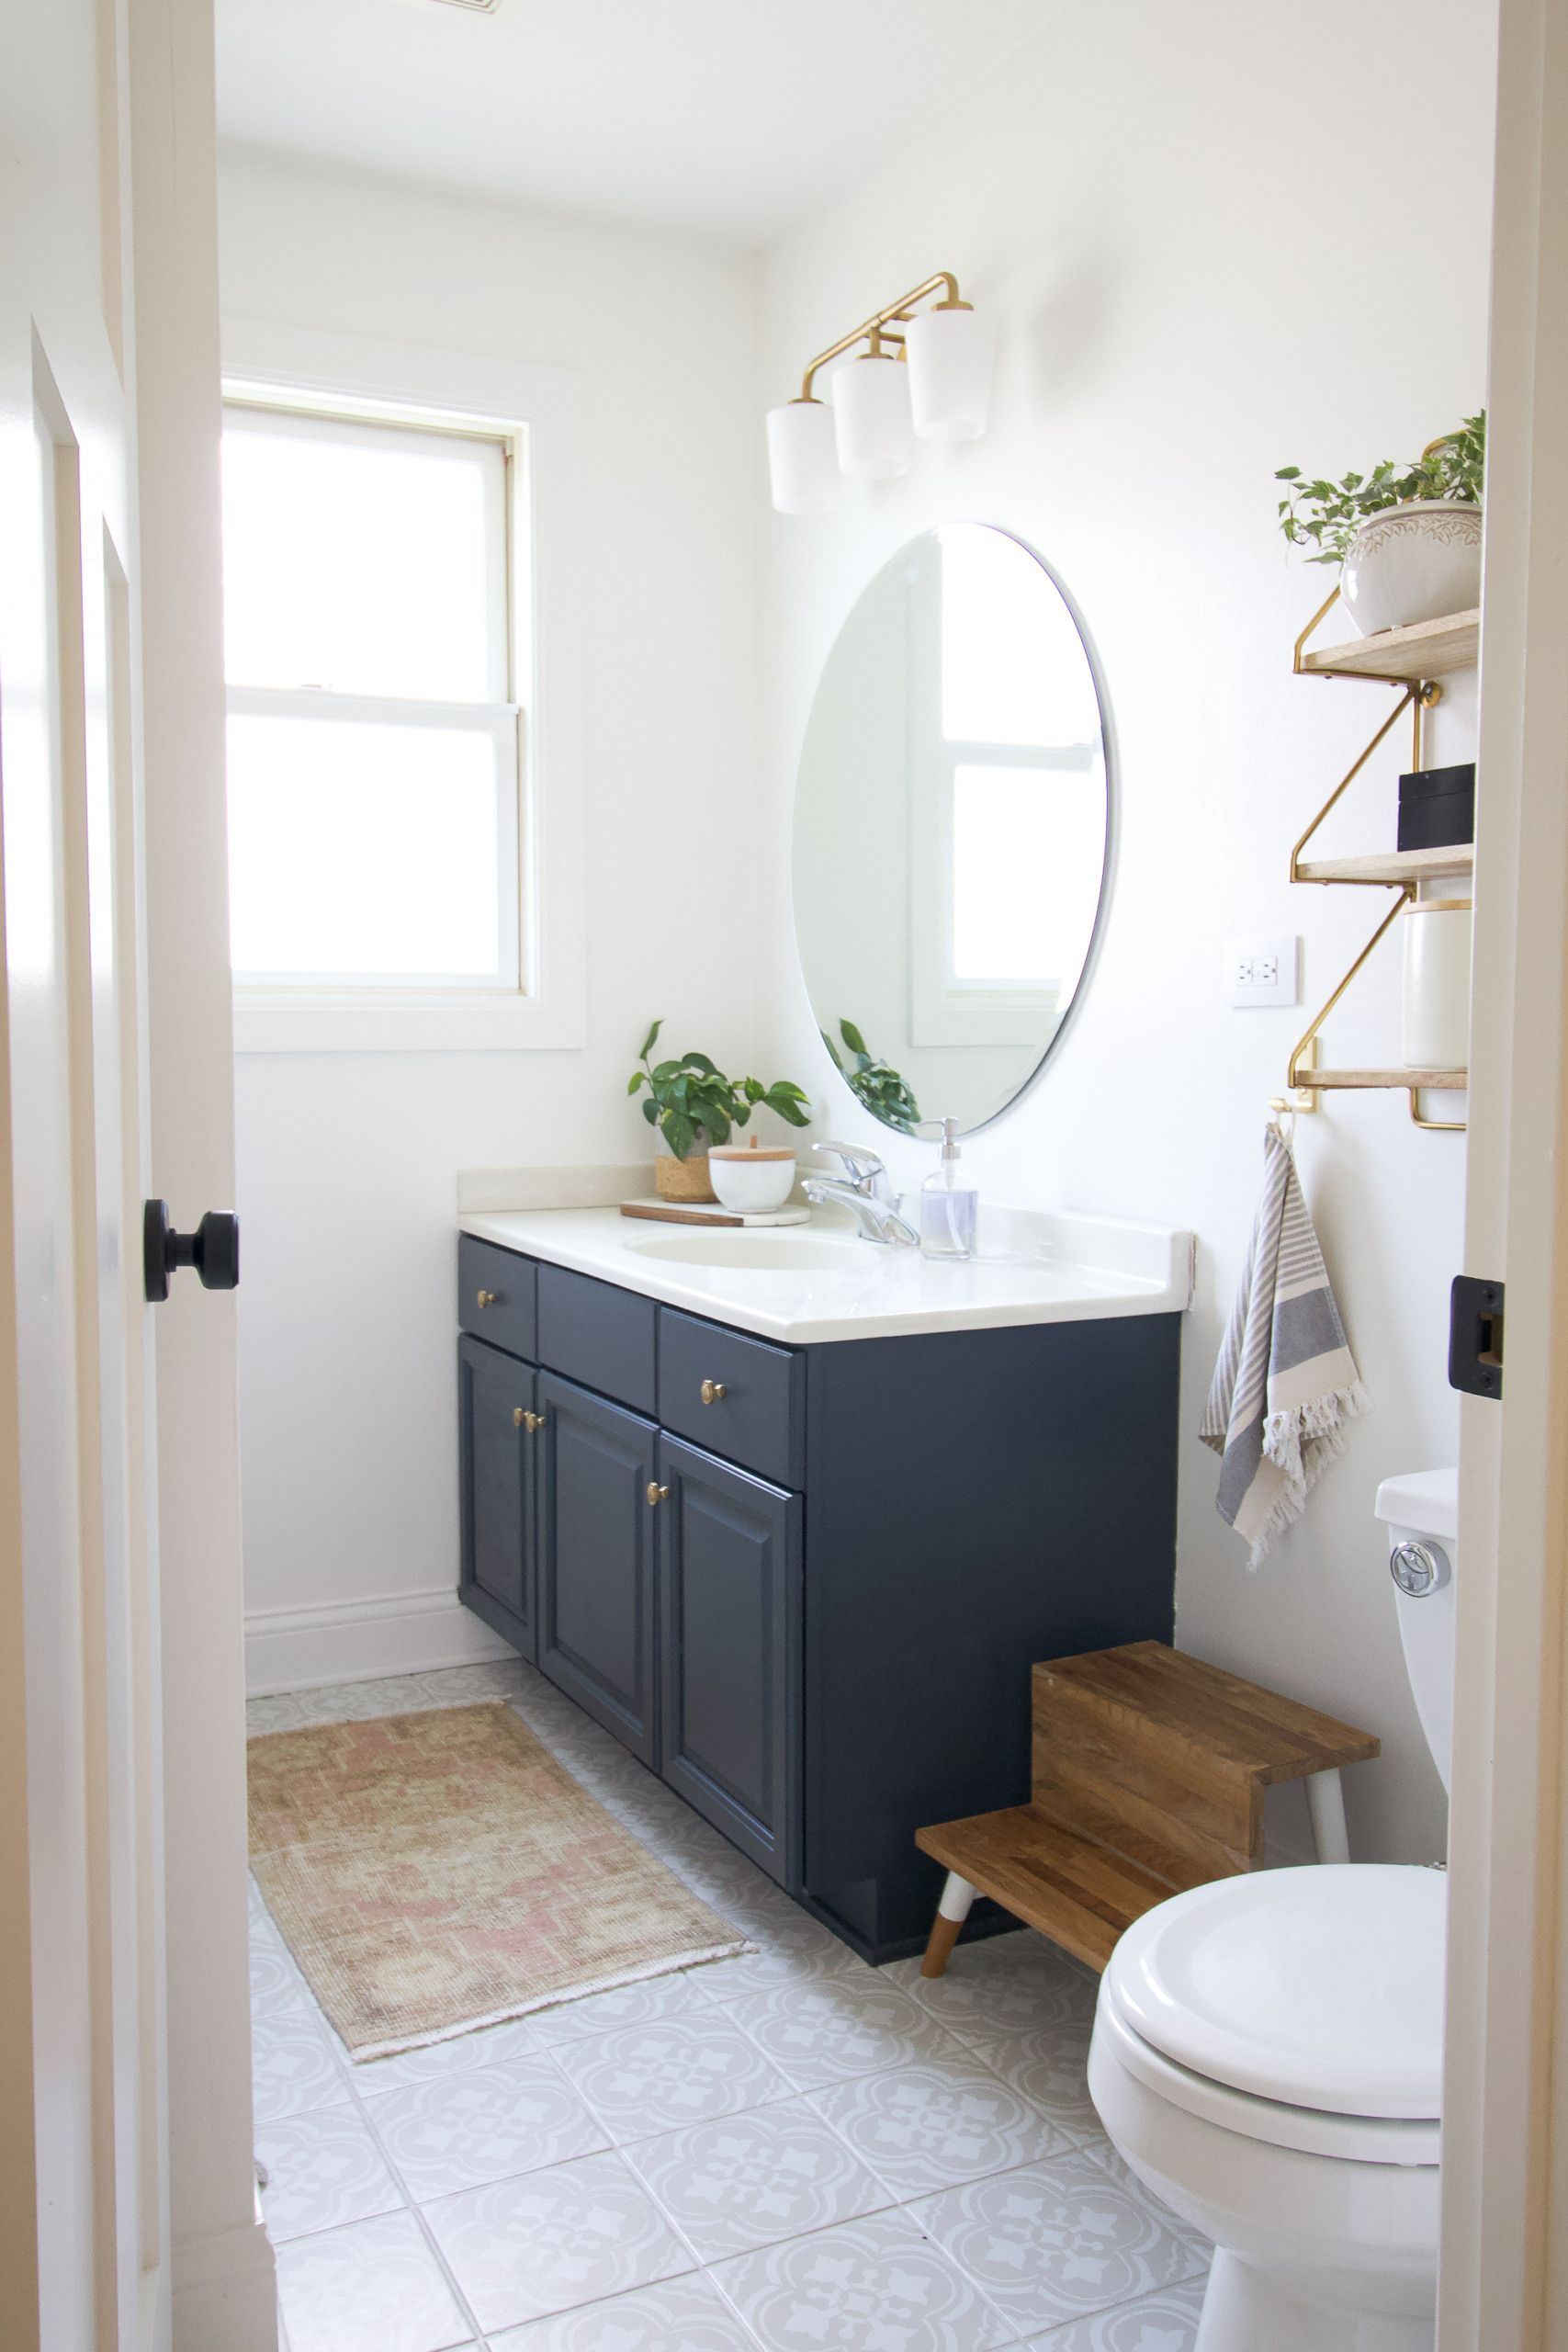 How To Add Value To Your Home The Diy Playbook In 2021 Bathroom Makeover Painted Bathroom Floors Upstairs Bathrooms